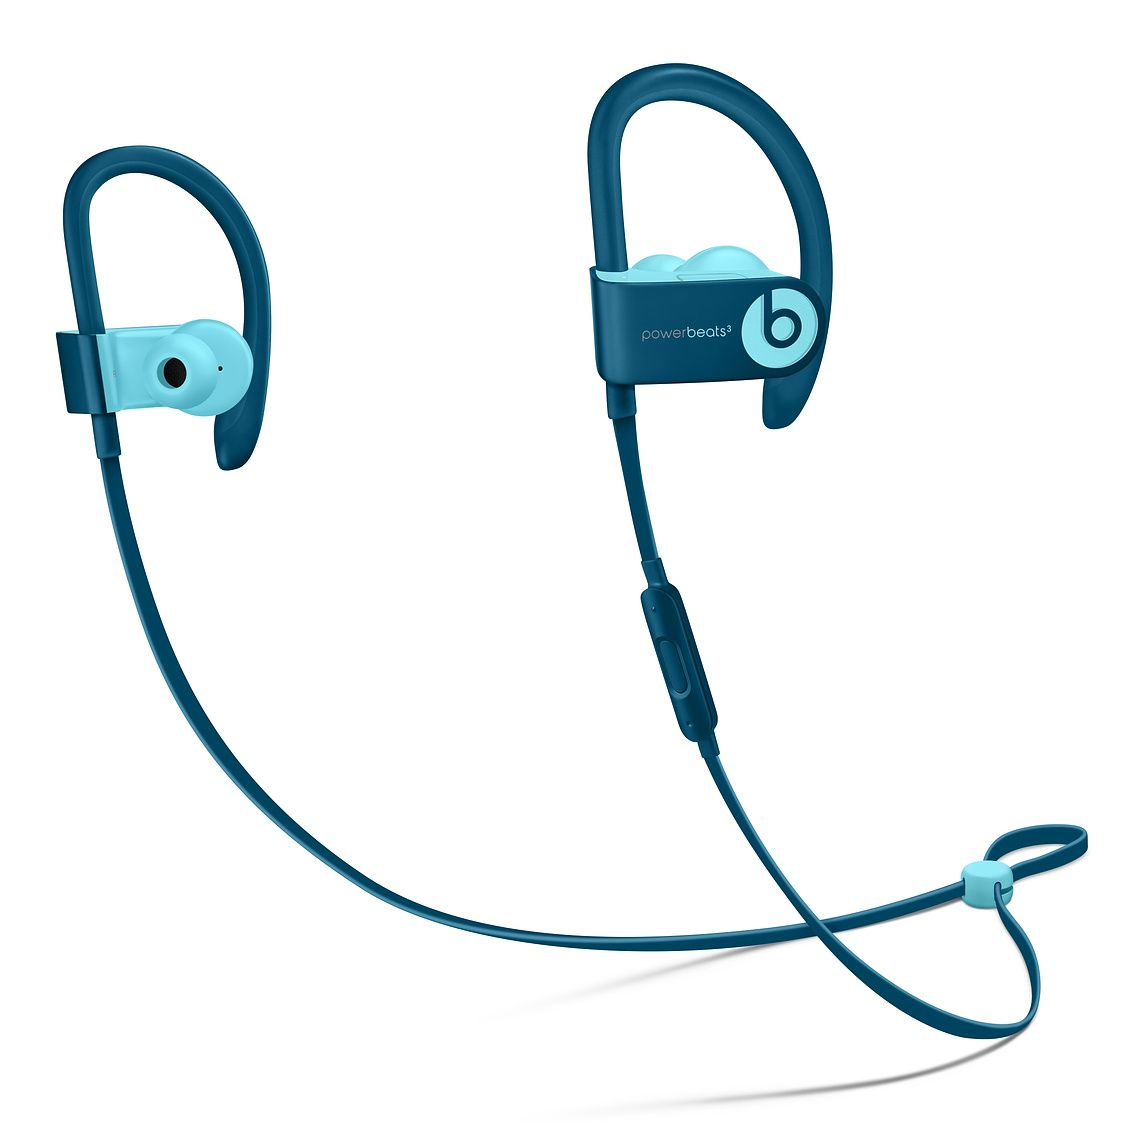 77798a23116 Powerbeats3 Wireless Earphones - Pop Blue - Beats Pop Collection -  Education - Apple